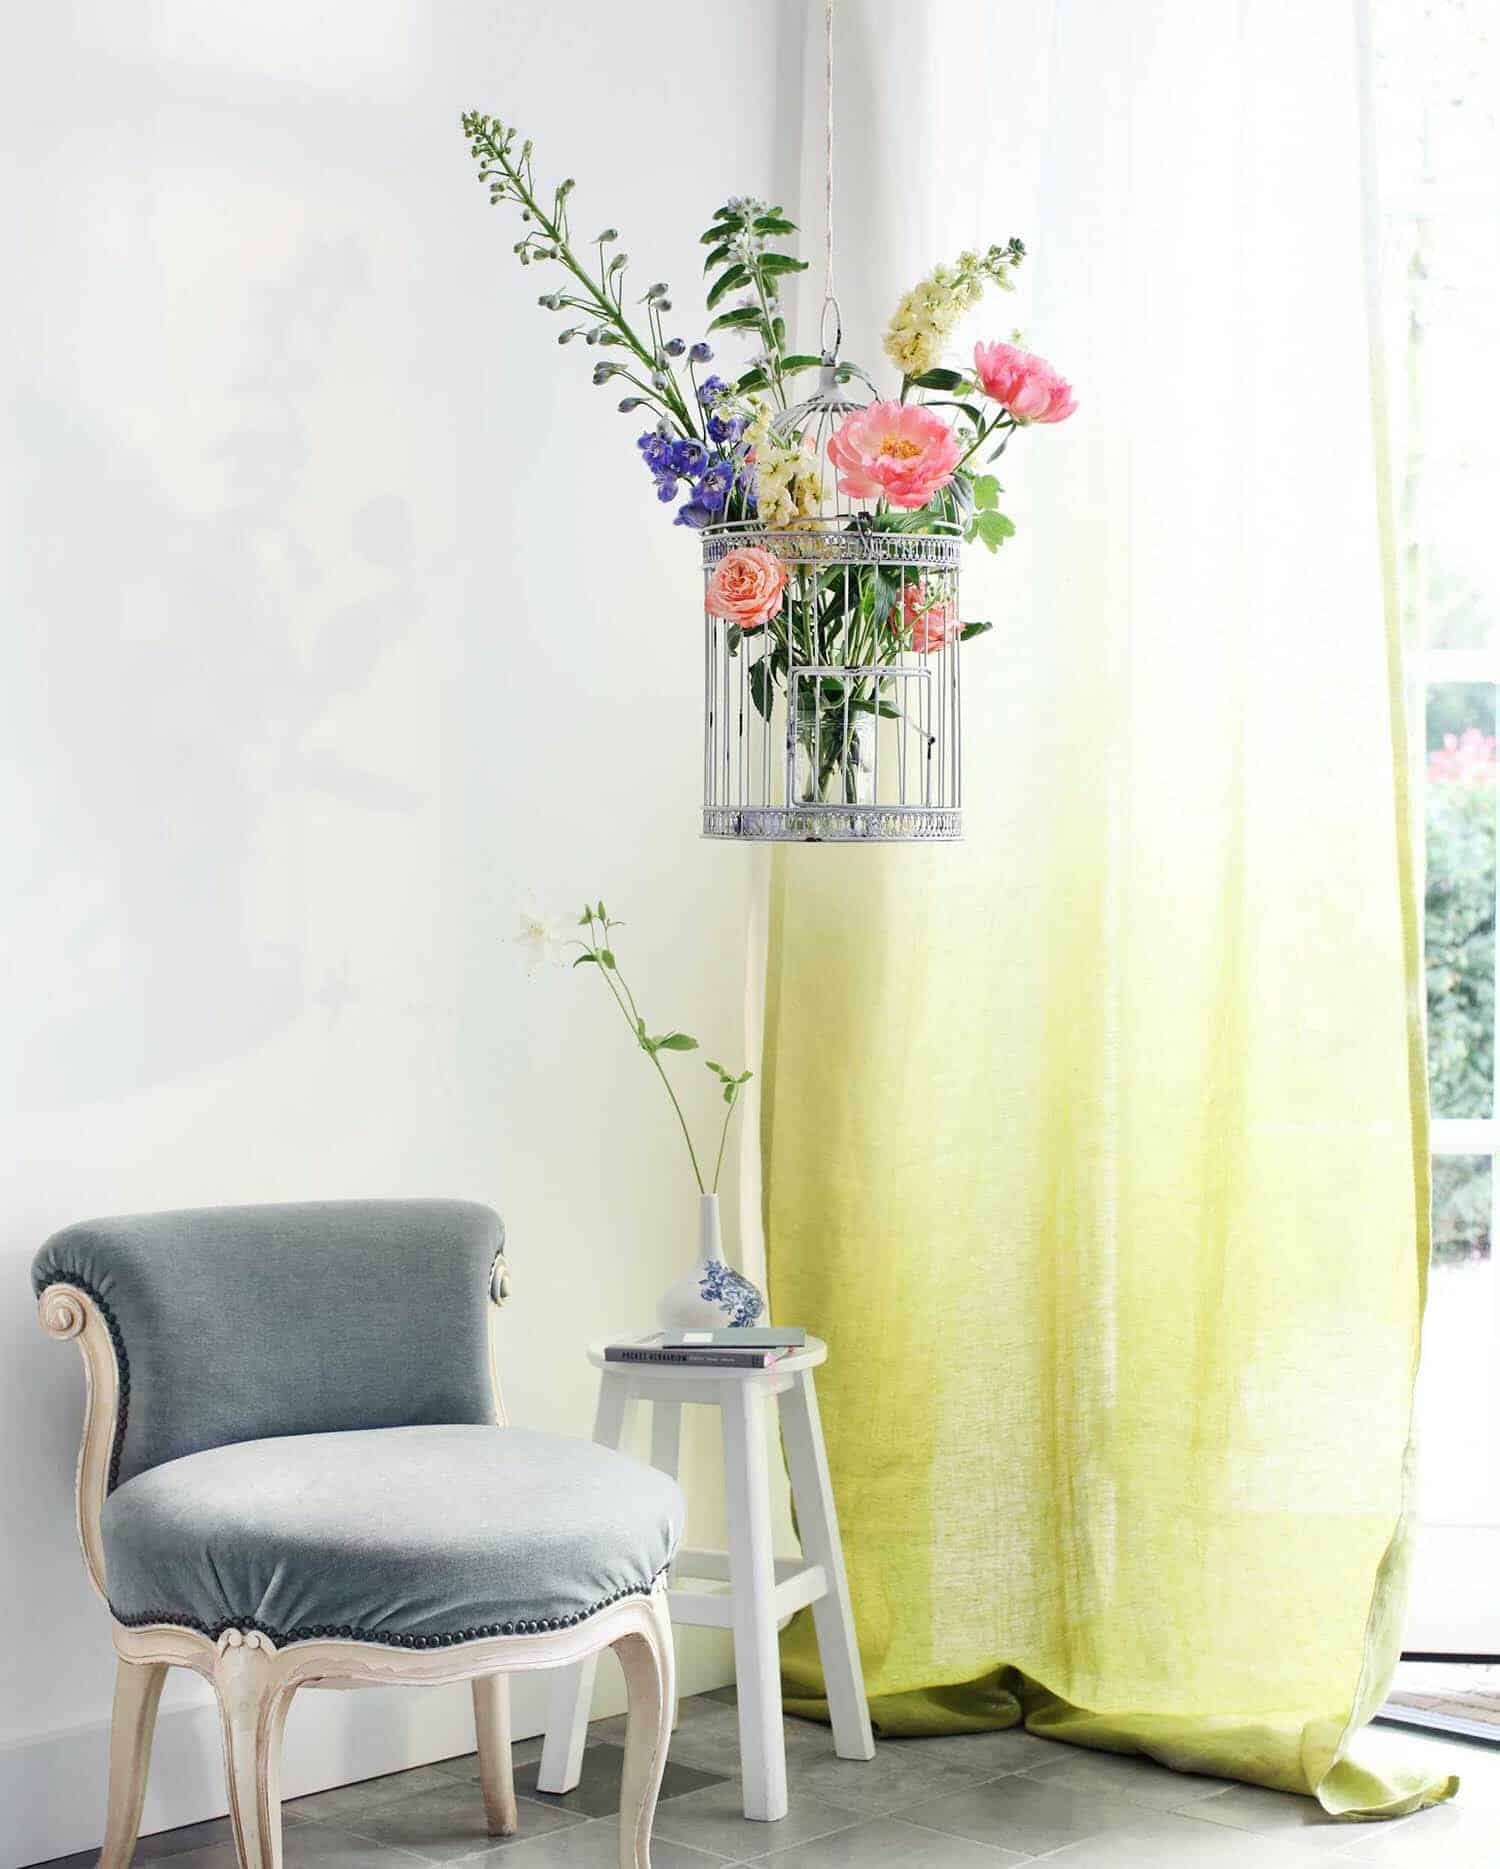 How To Decorate Your Home With Spring Floral Arrangements-16-1 Kindesign